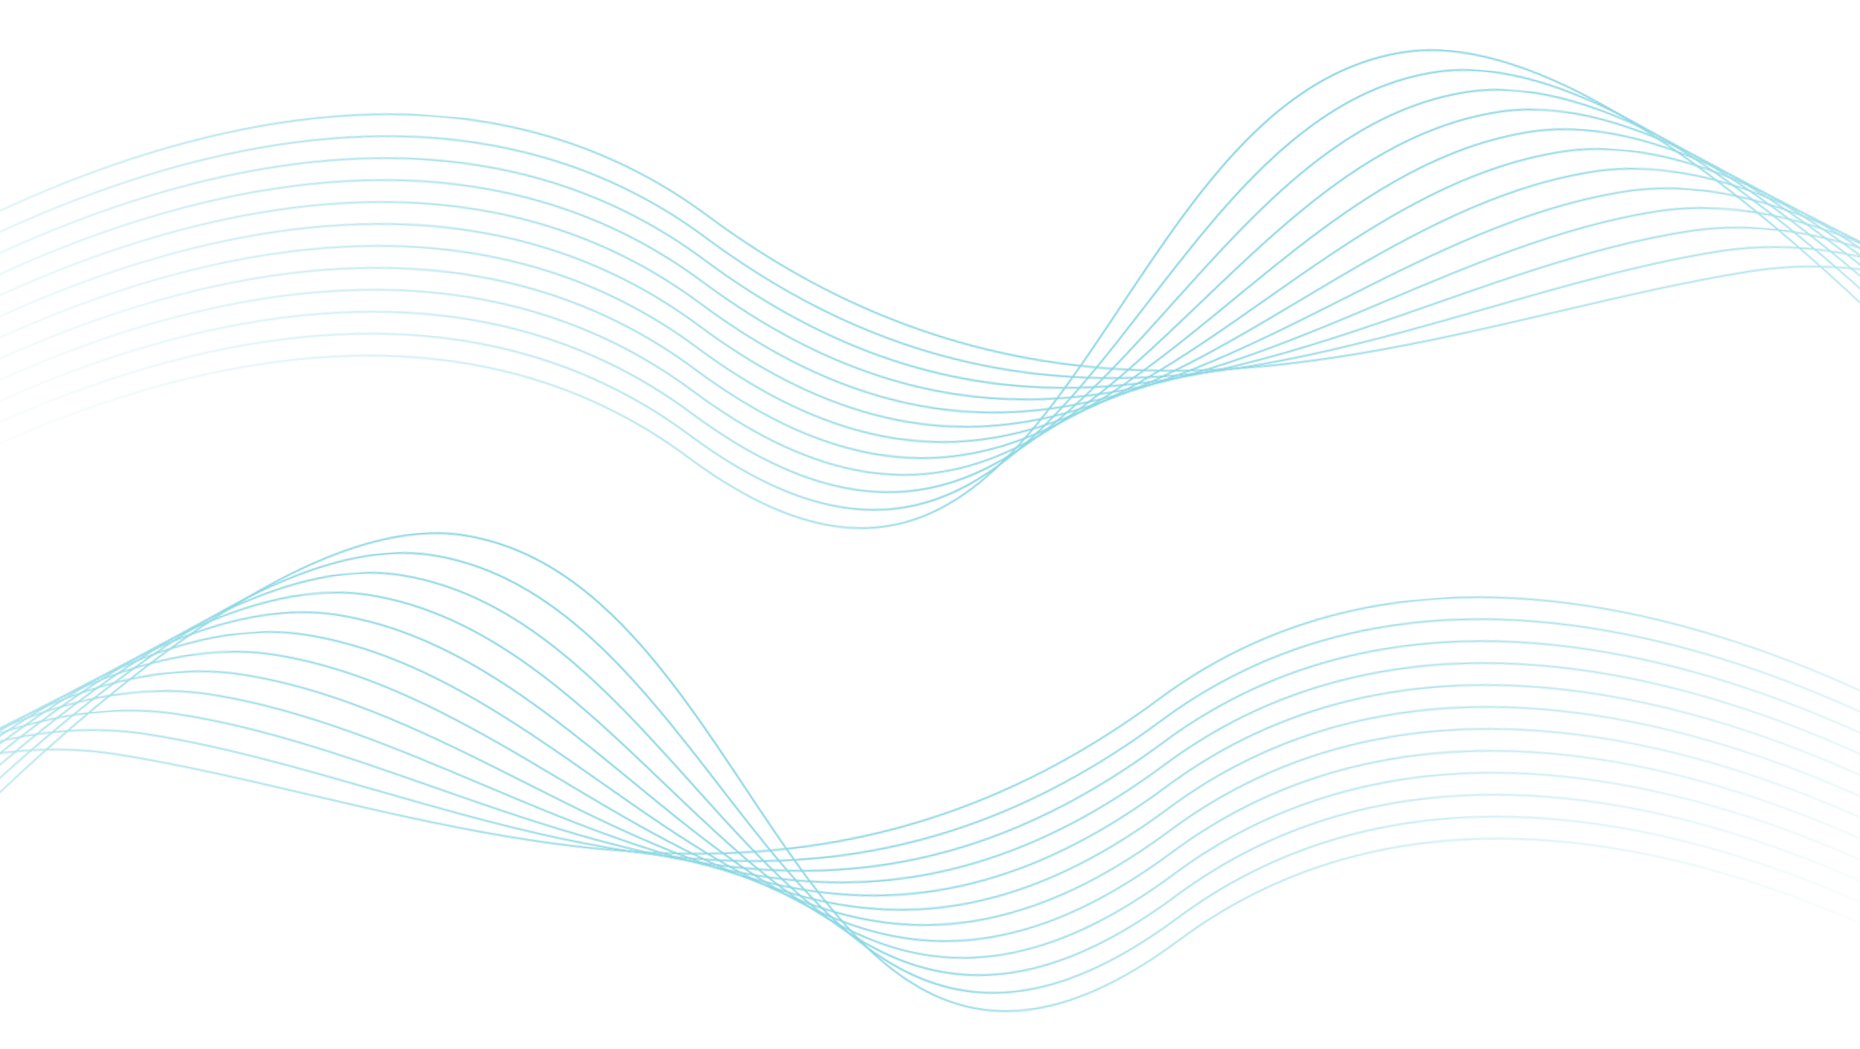 Dynamic wave background three using lines